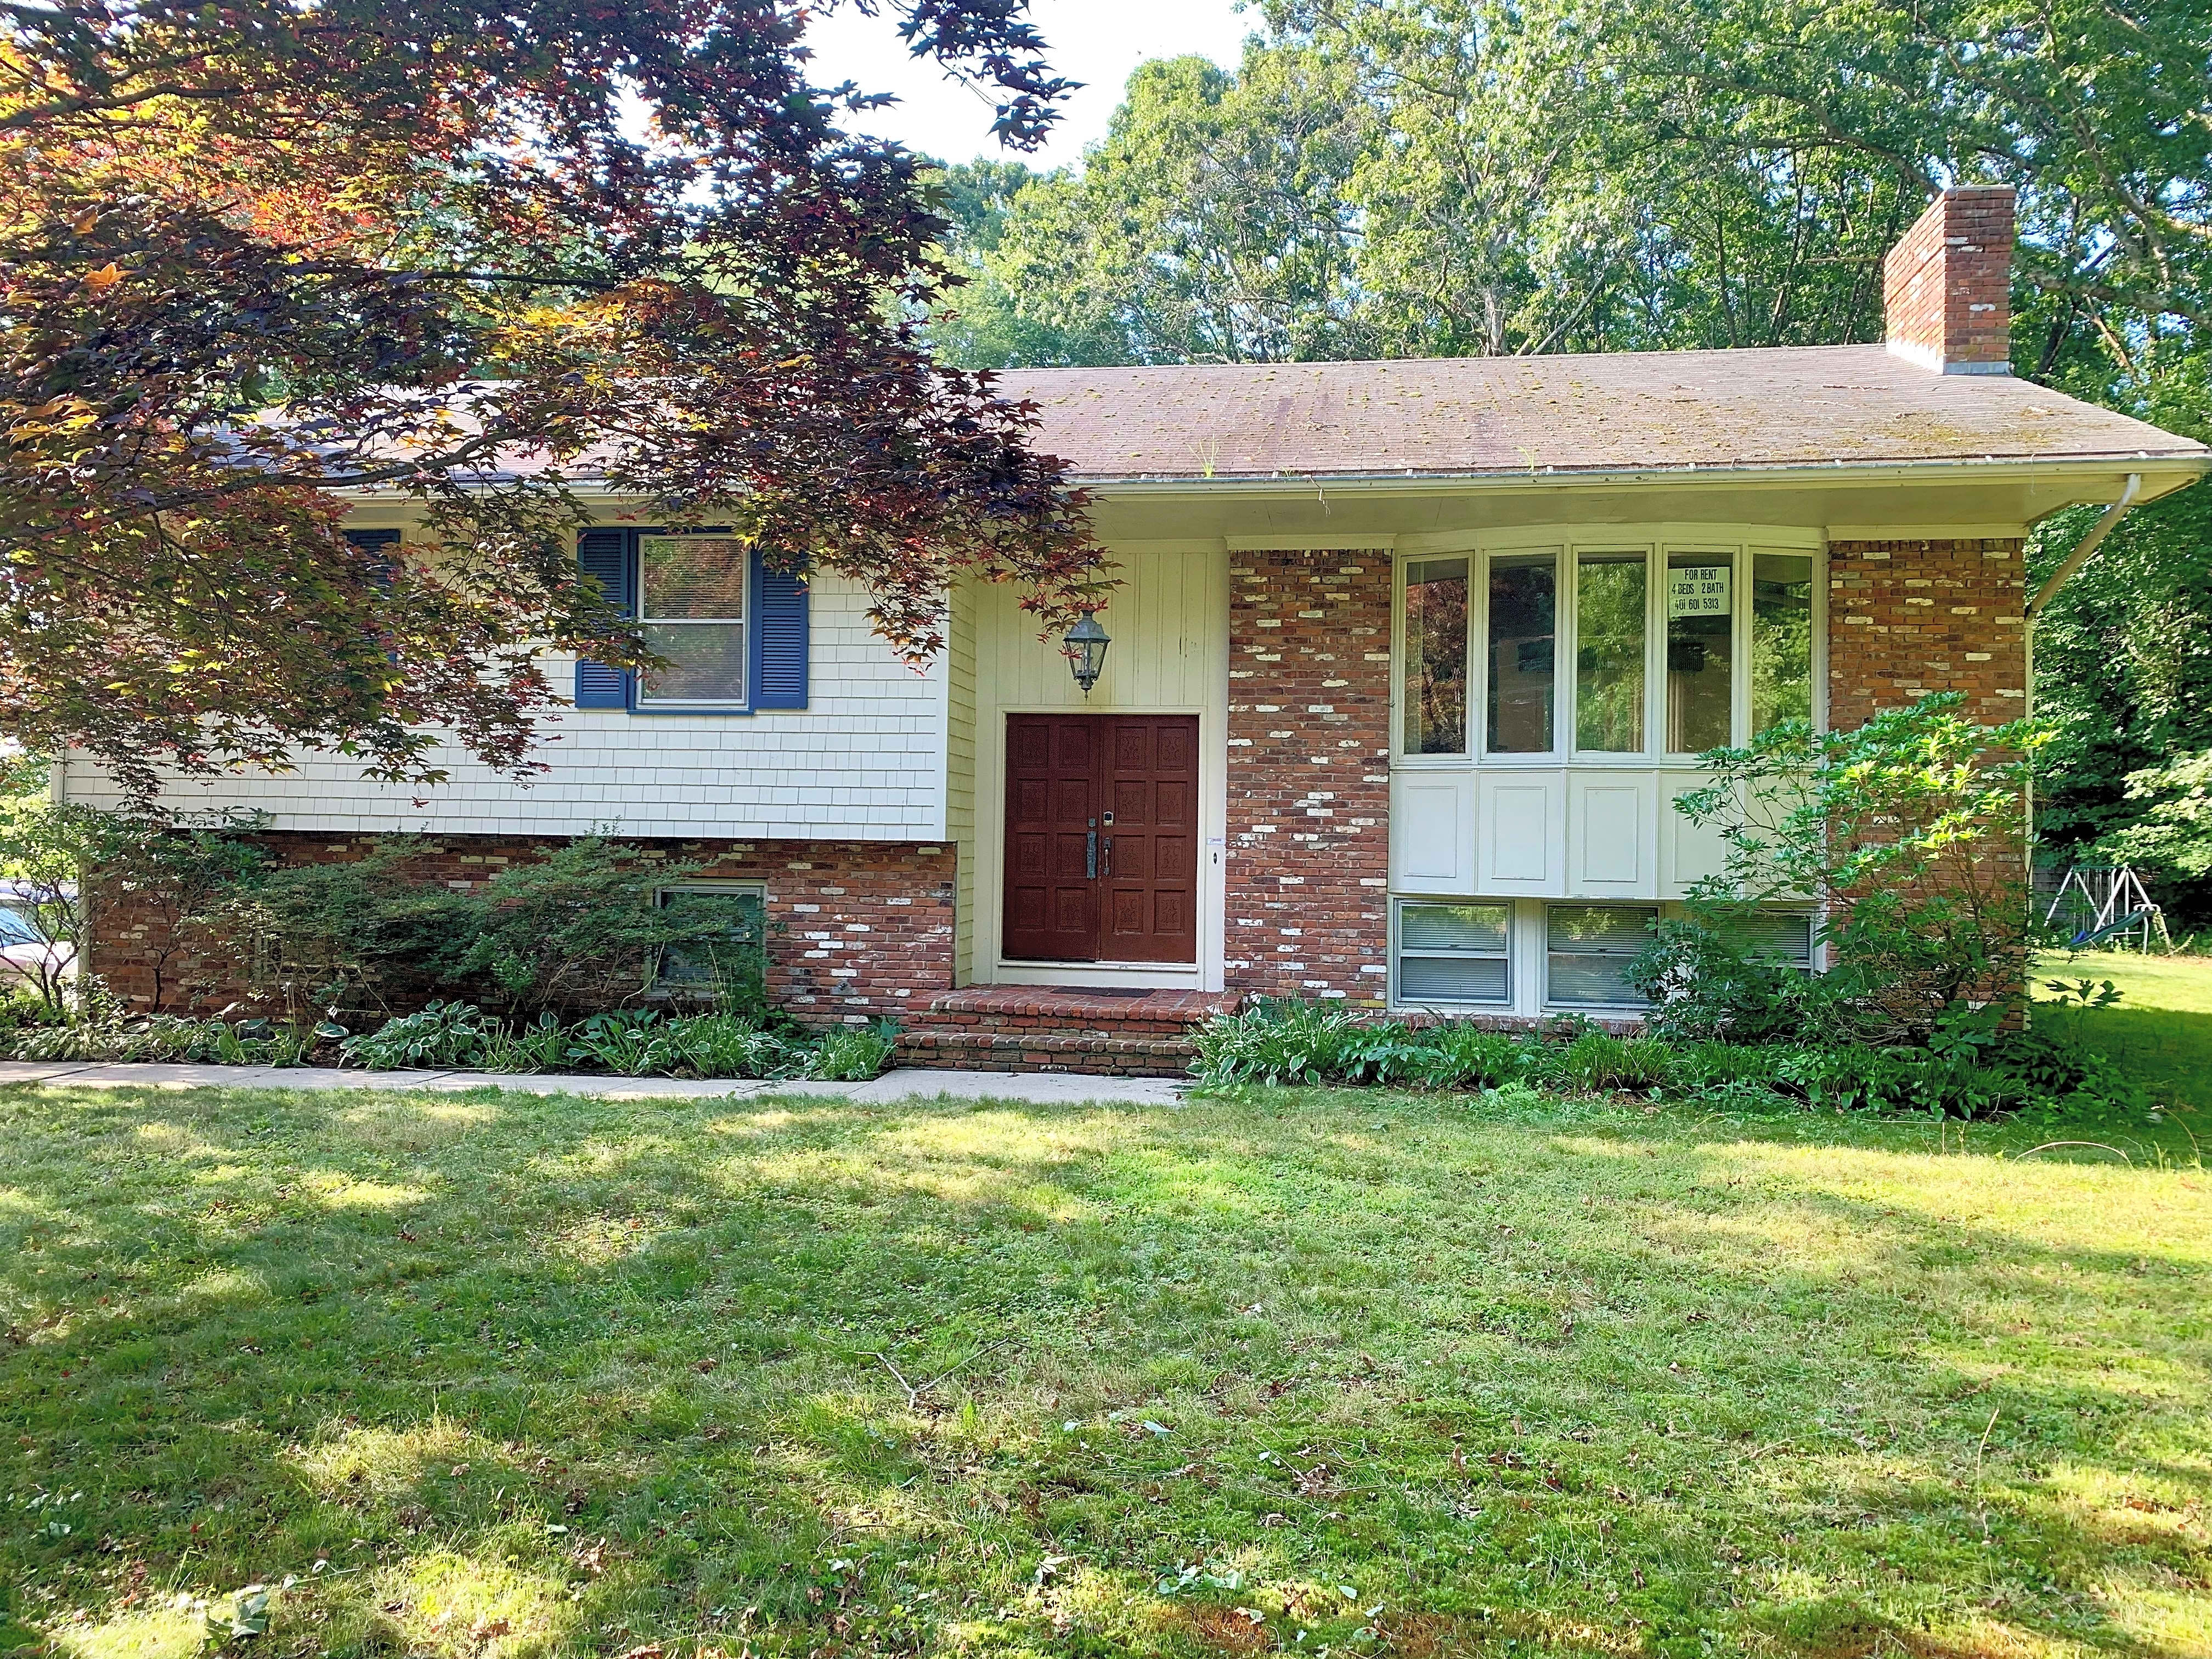 House for Rent in East Greenwich